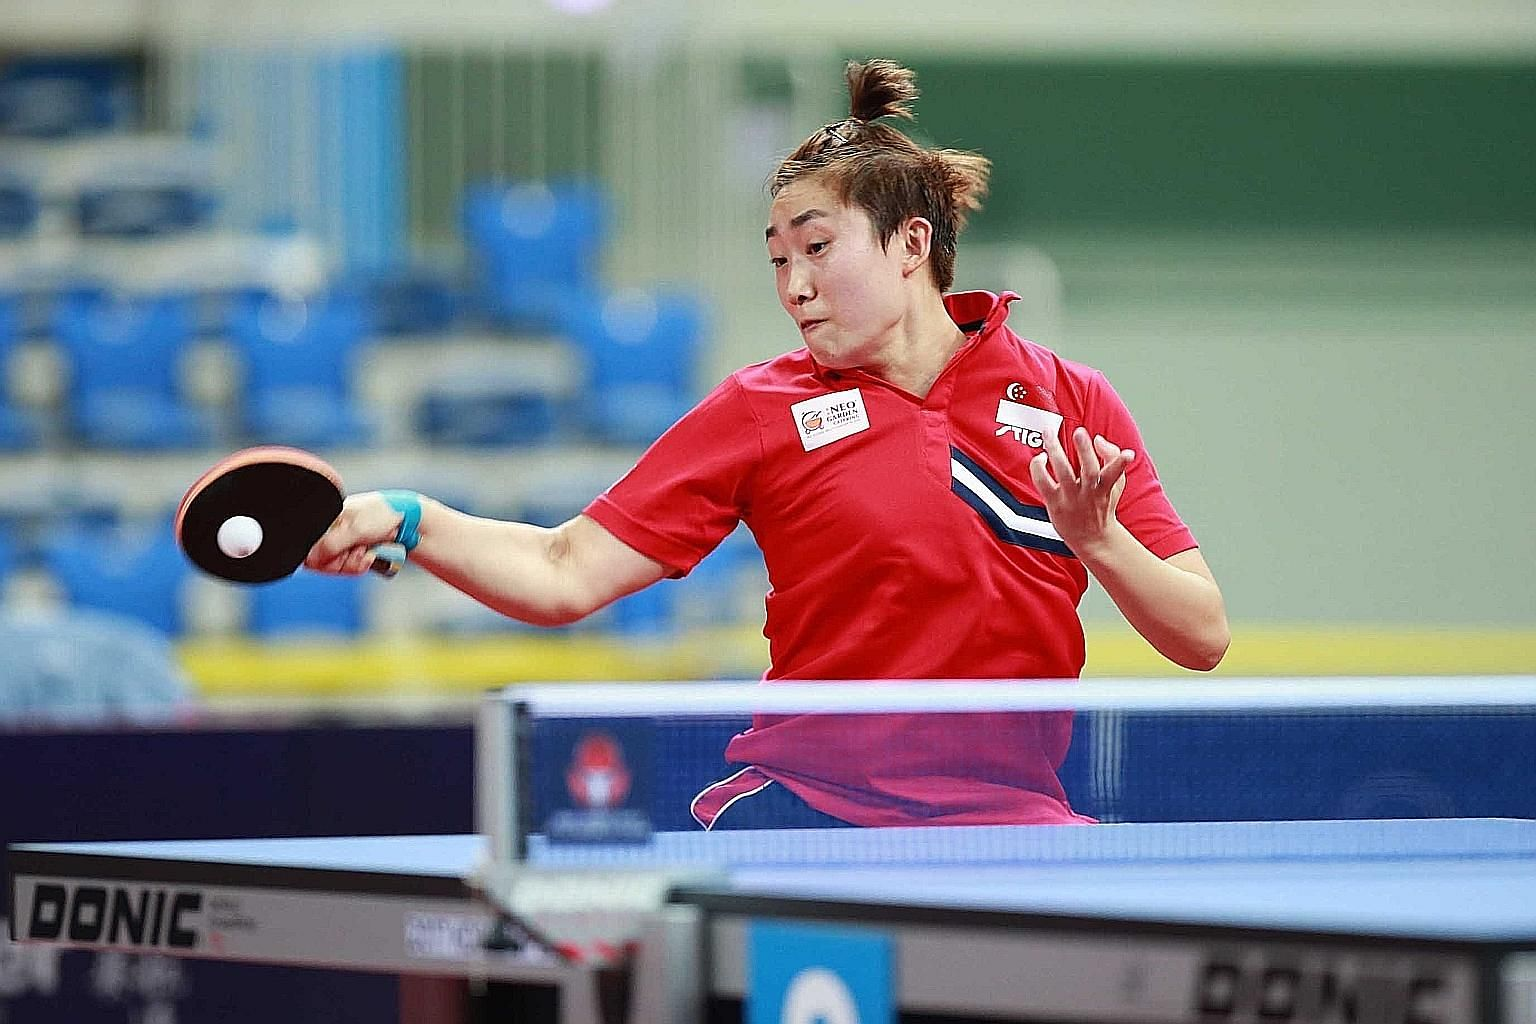 Singapore's world No. 3 Feng Tianwei in action during her win over Chinese Taipei's Chen Szu-yu in the semi-finals. She will take on fourth-ranked Kasumi Ishikawa in today's final in which she is aiming for a third Korea Open title.